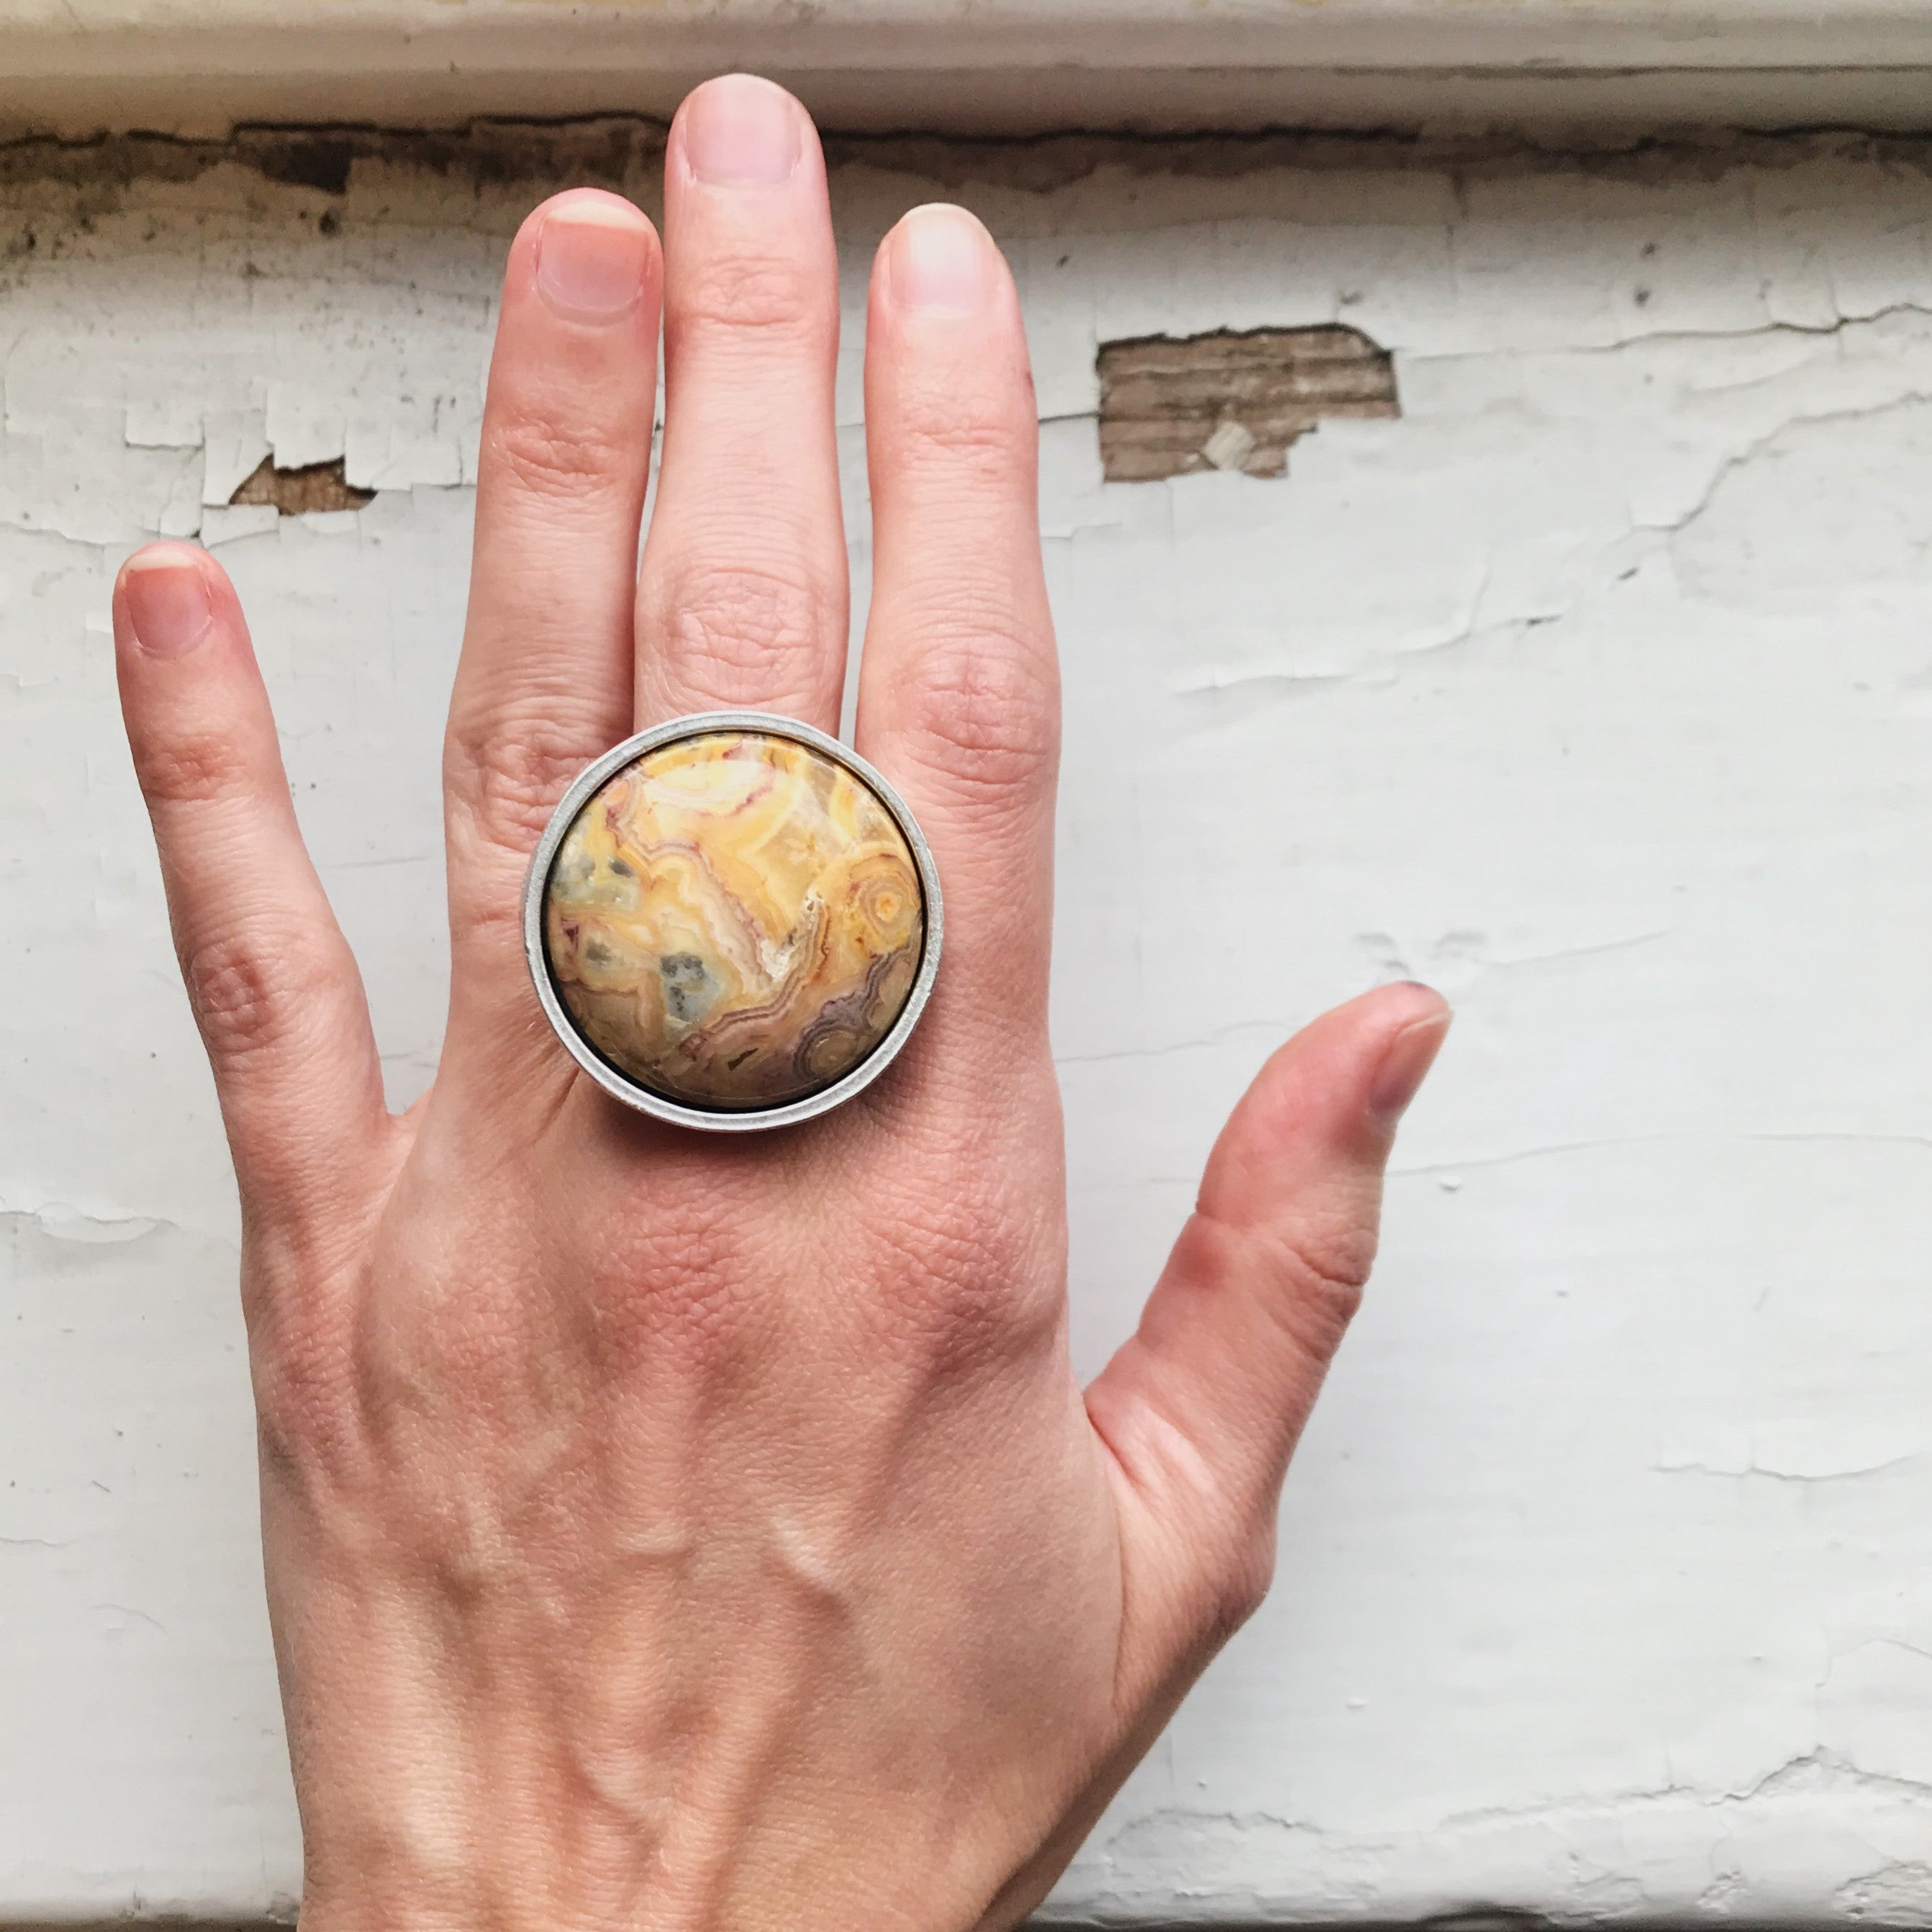 Large cocktail statement ring with round stone - colorful yellow gold crazy lace agate - Bohemian jewelry inspired by nature handmade by Yugen Tribe